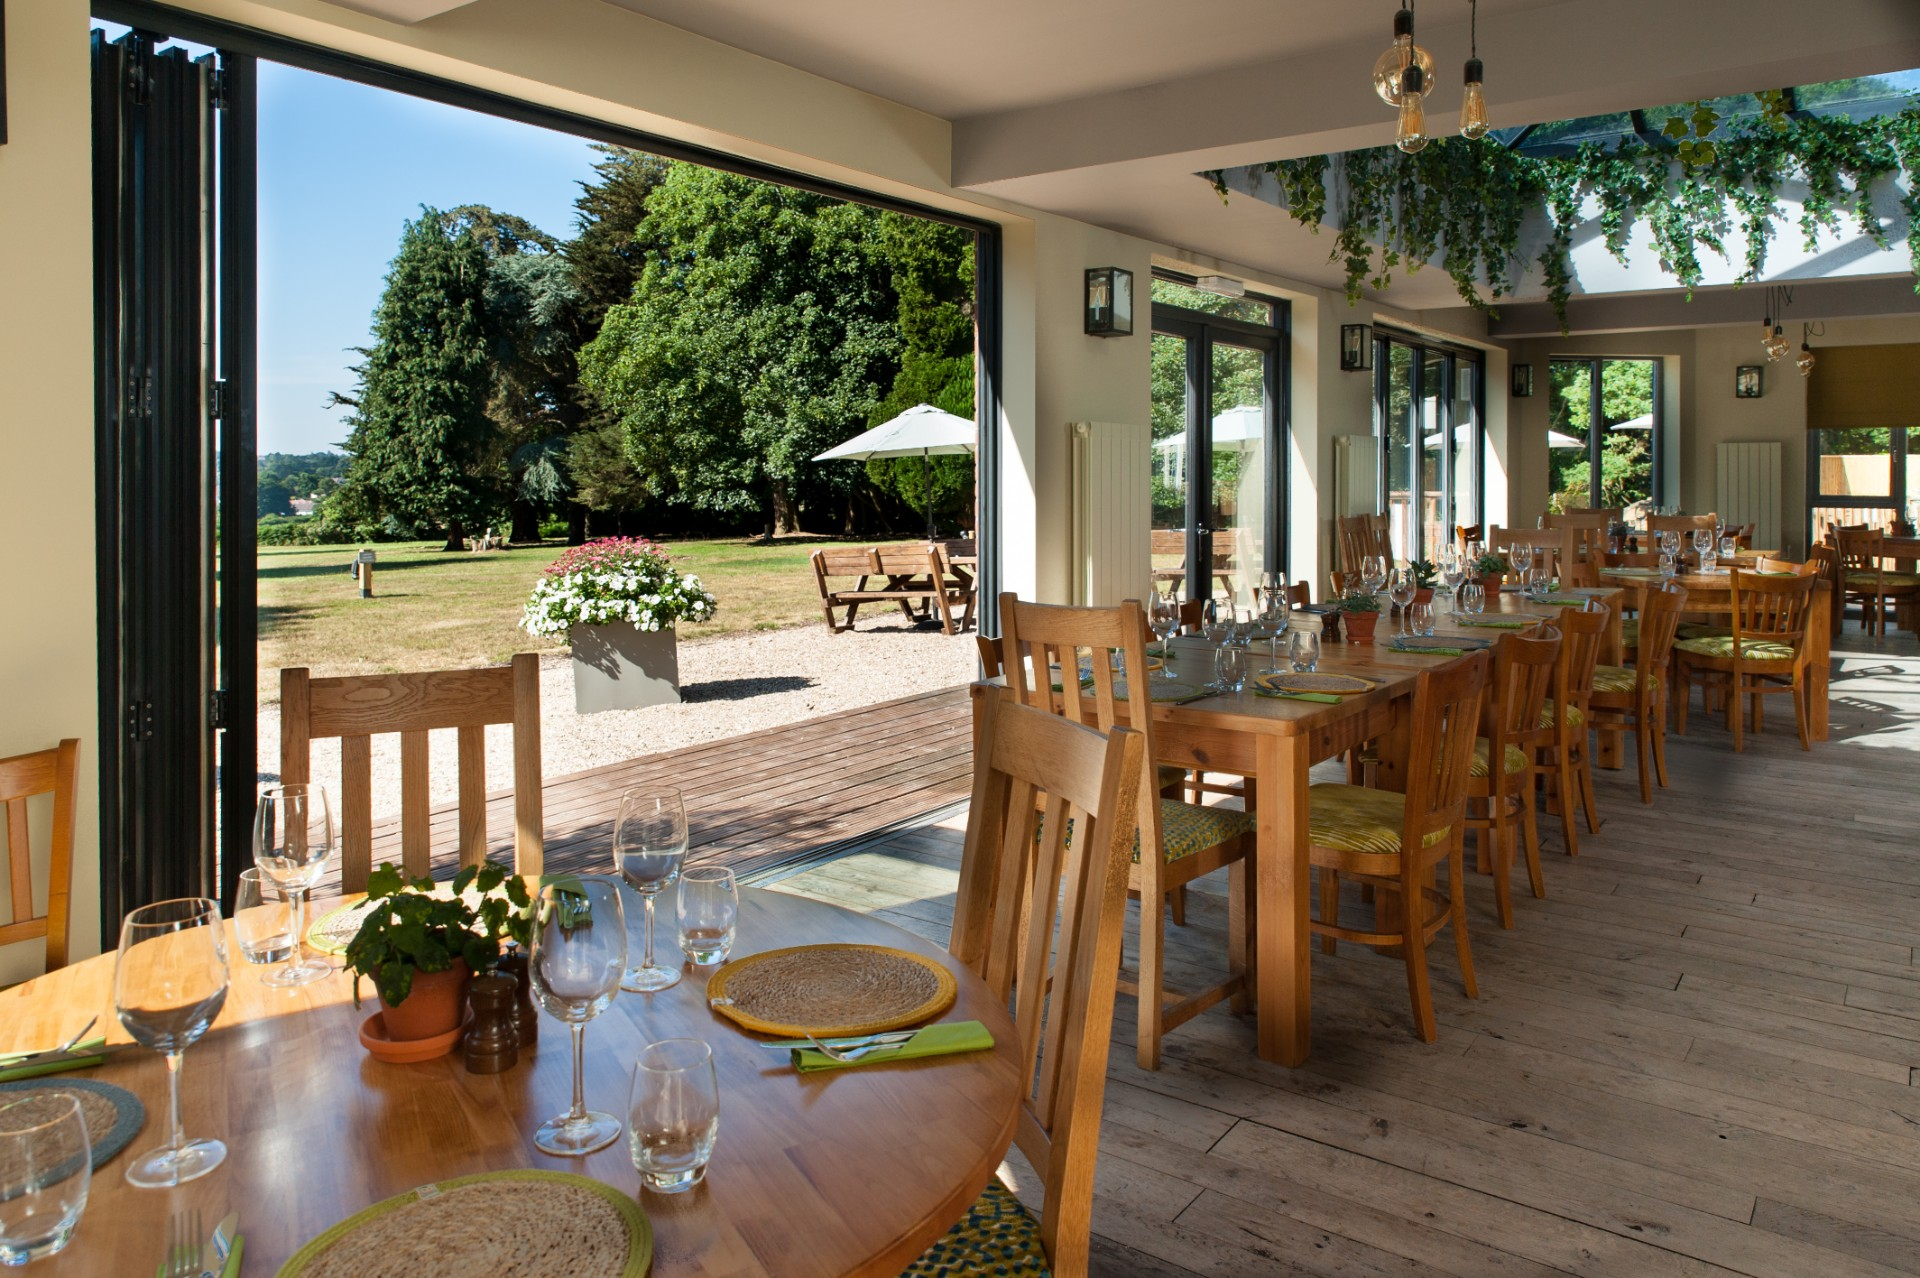 Dining seating with views of the grounds at the pear at parley bar and restaurant in west parley, ferndown, dorset